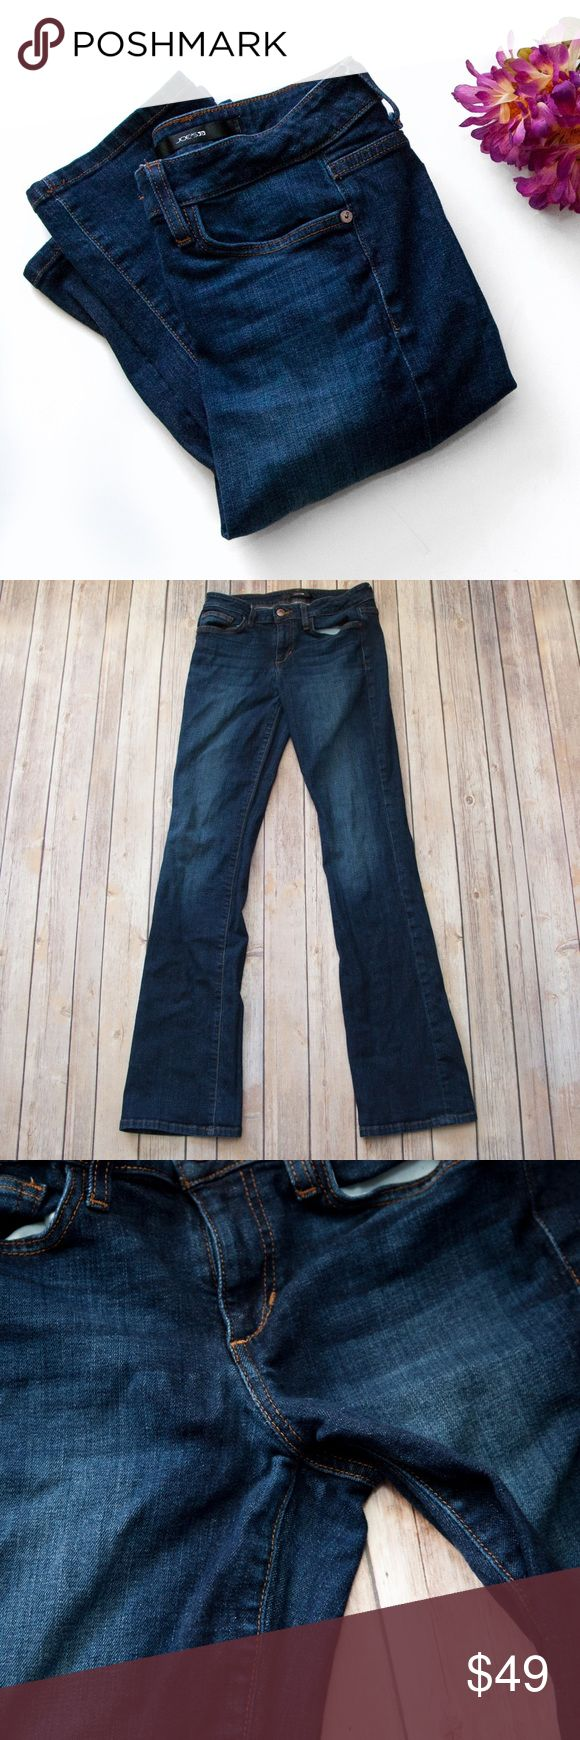 """Joe's Jeans Curvy Bootcut Rosie Wash FHRO5730 These are awesome curvy Bootcut Jeans! Waist measures approx. 14.5"""" across laying flat, approx. 8.25"""" front rise, and approx. 33"""" inseam. Some light puckering in the crotch area but xcellent pre-loved condition!  🚫no trades 🚫no modeling ✅dog friendly/🚭smoke free home ✅reasonable offers ✅bundle & save! Joe's Jeans Jeans Boot Cut"""